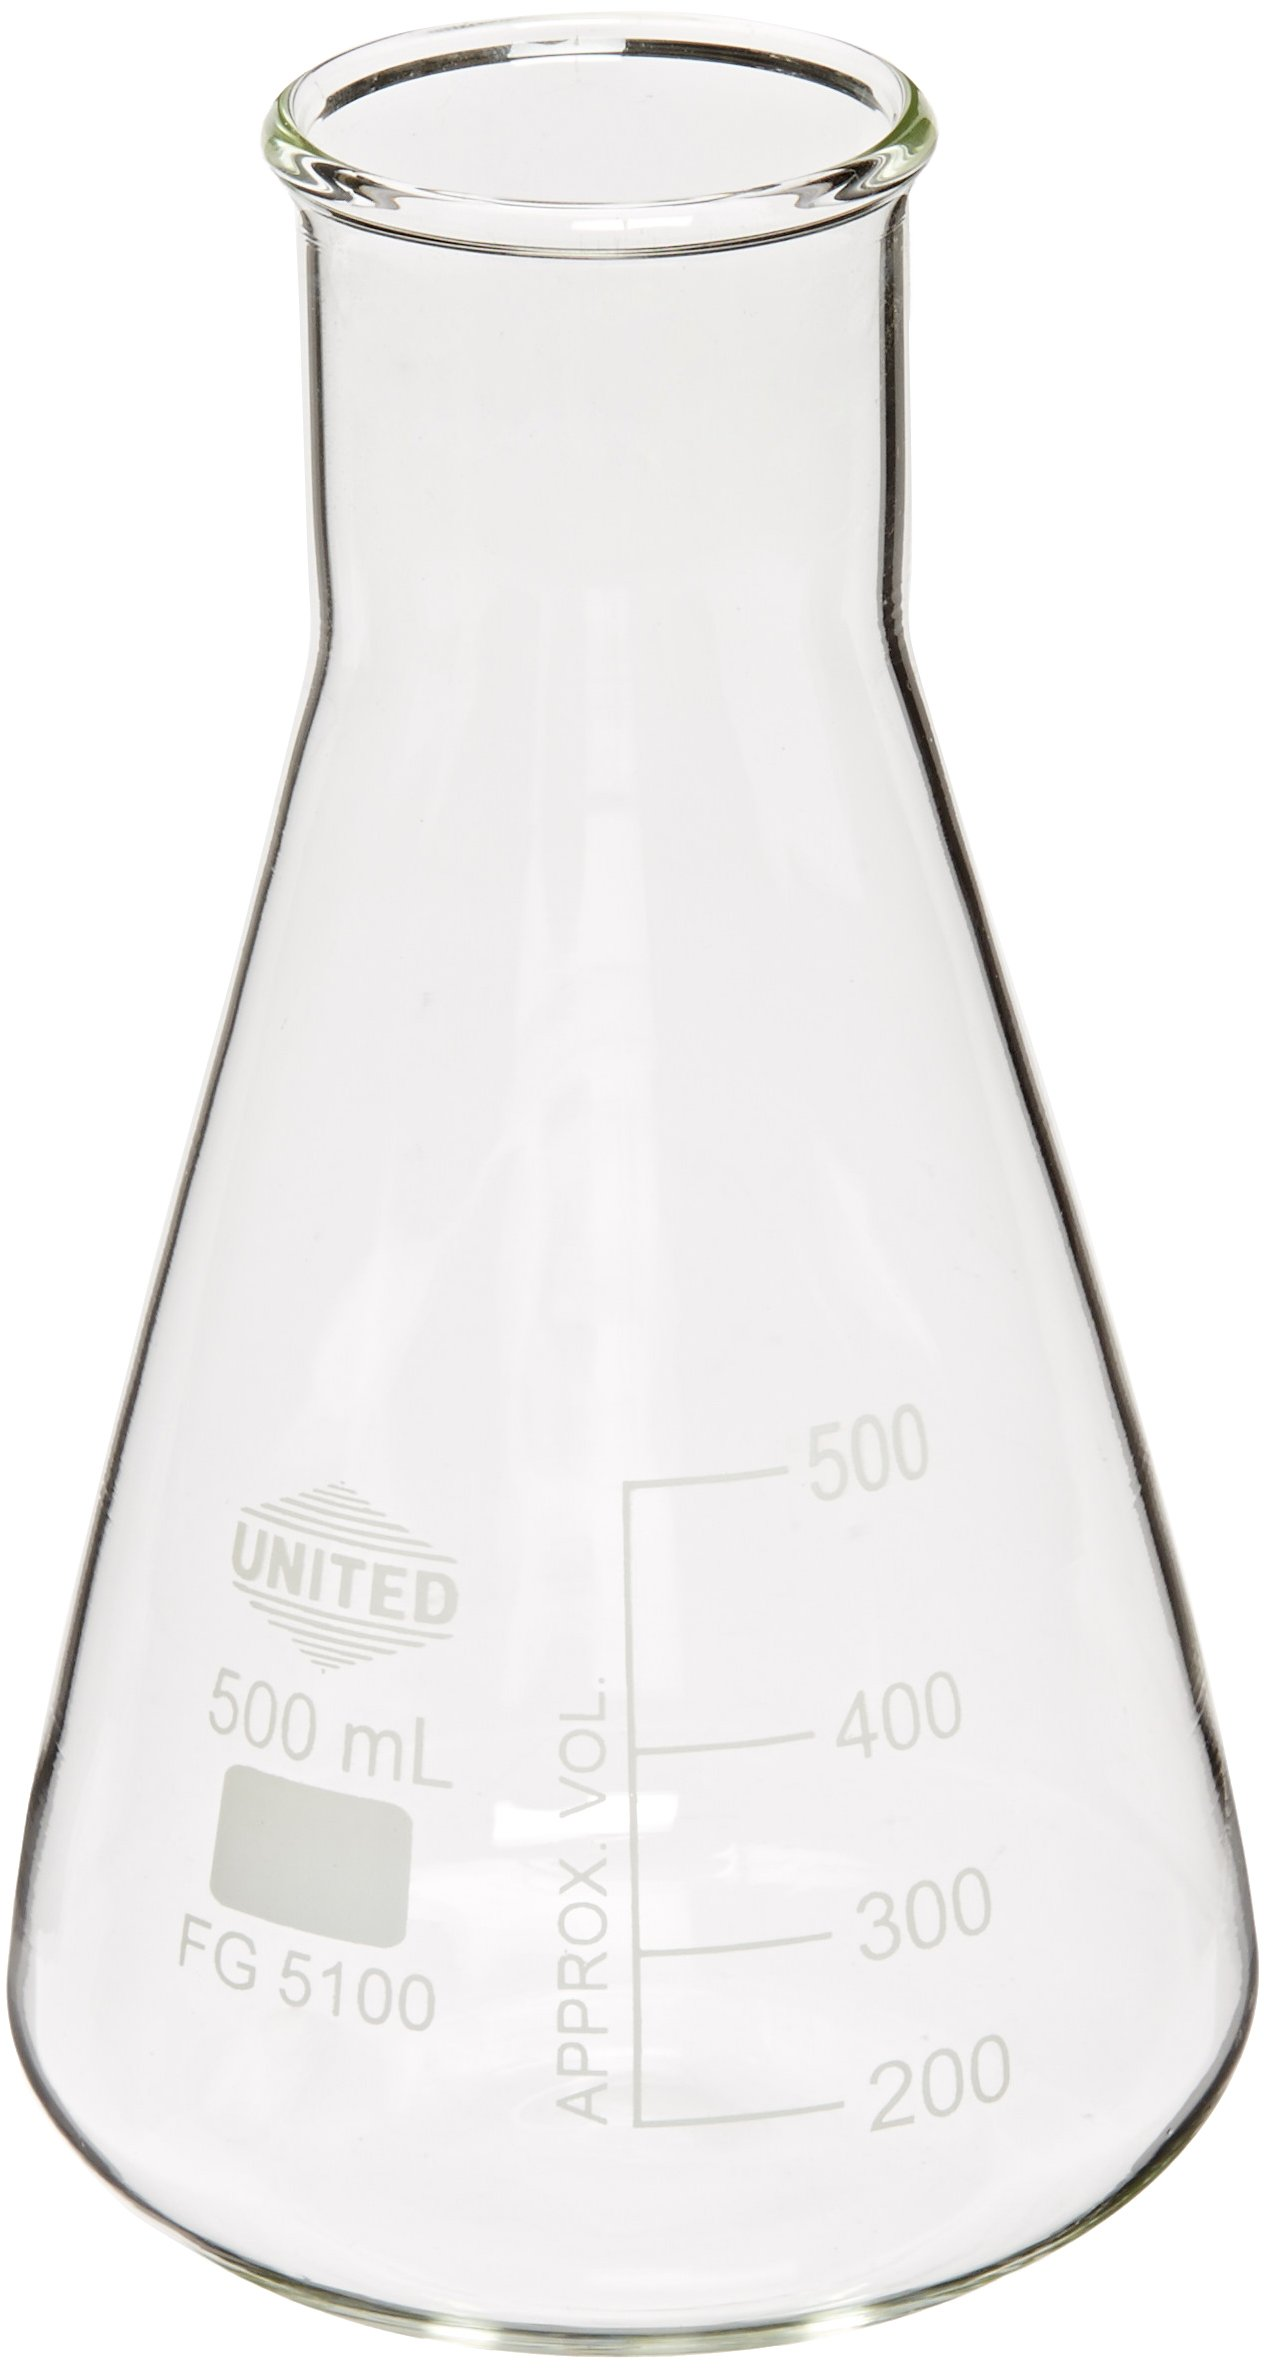 United Scientific FG5100-500 Borosilicate Glass Wide Mouth Erlenmeyer Flask, 500ml Capacity (Pack of 6)